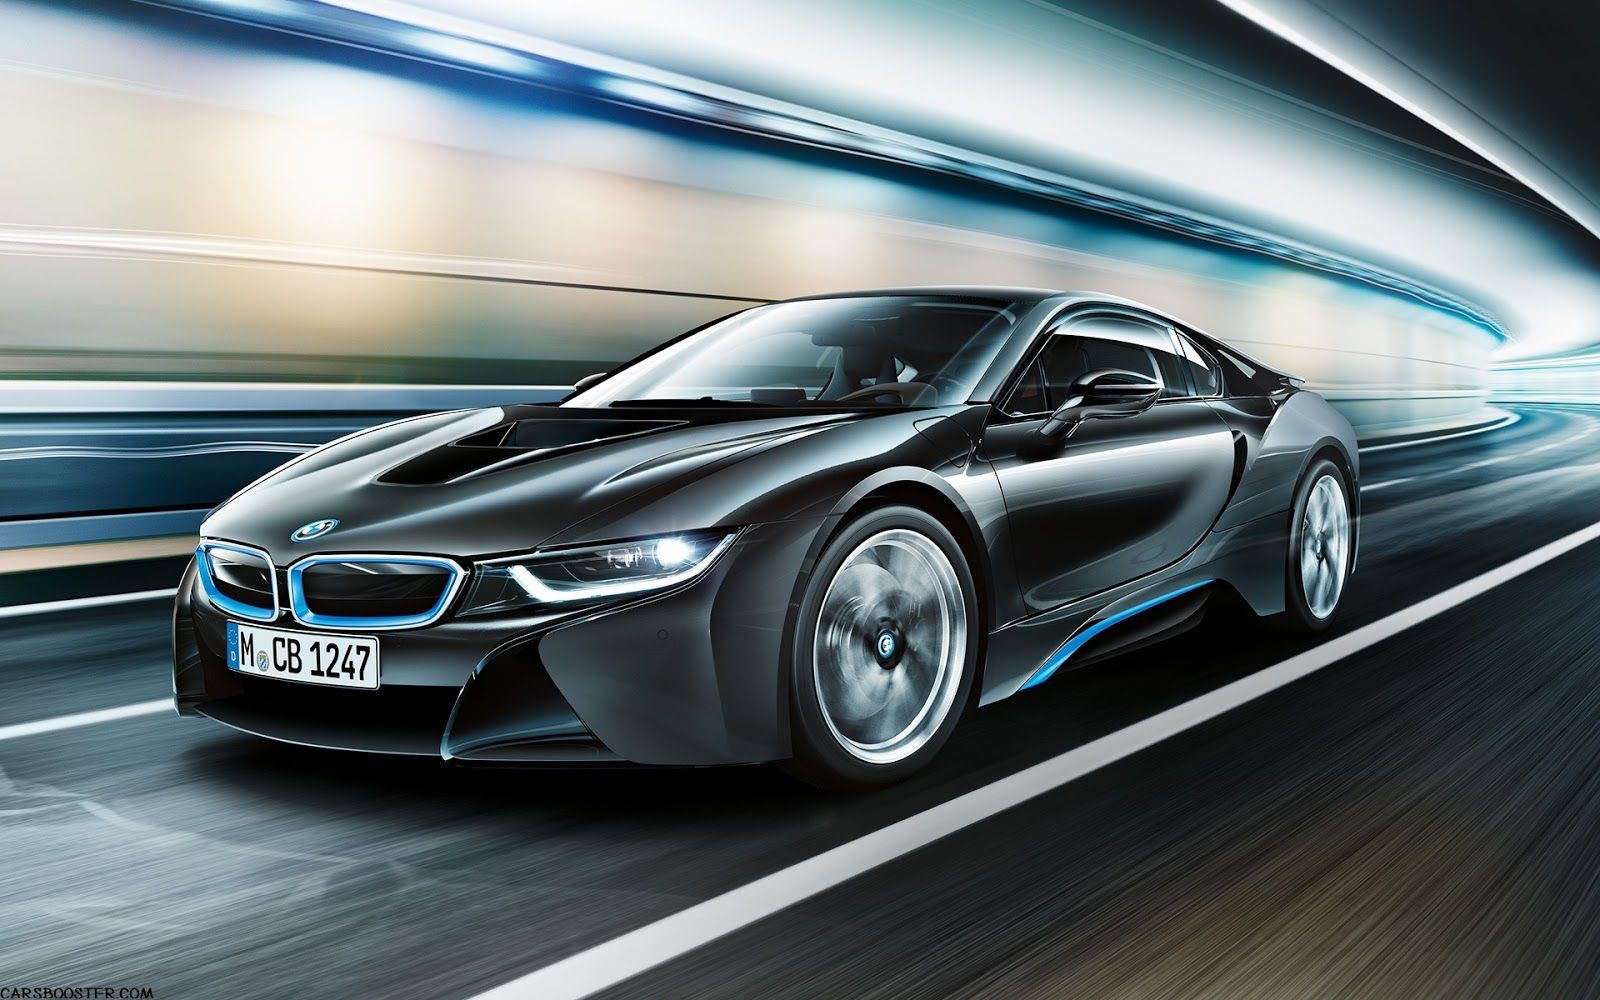 75 Best Free Bmw I8 Hd Wallpapers Wallpaperaccess